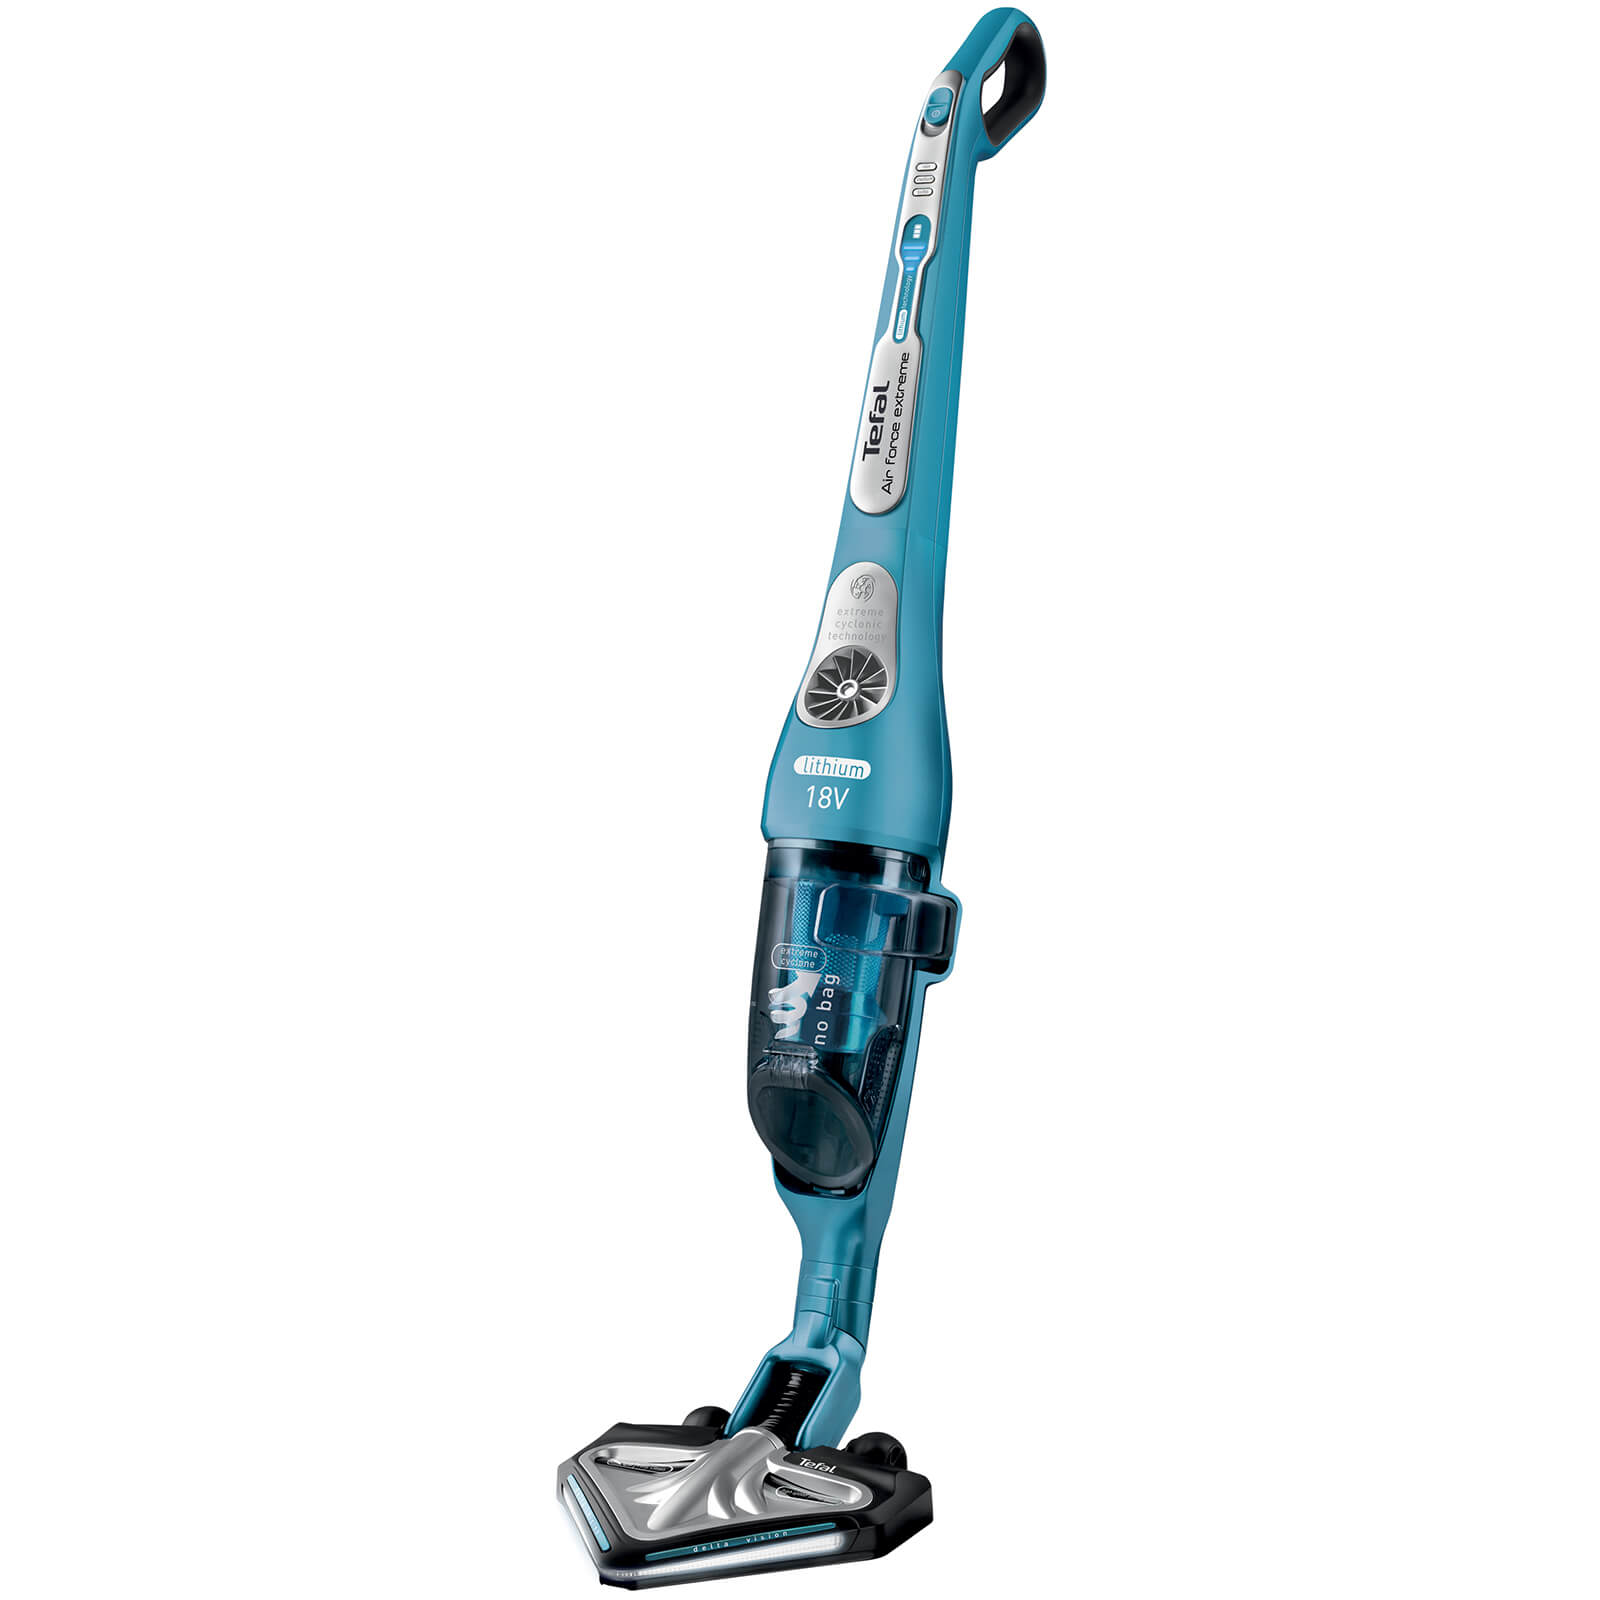 Tefal TY8841 Air Force 18V Upright Vacuum Cleaner